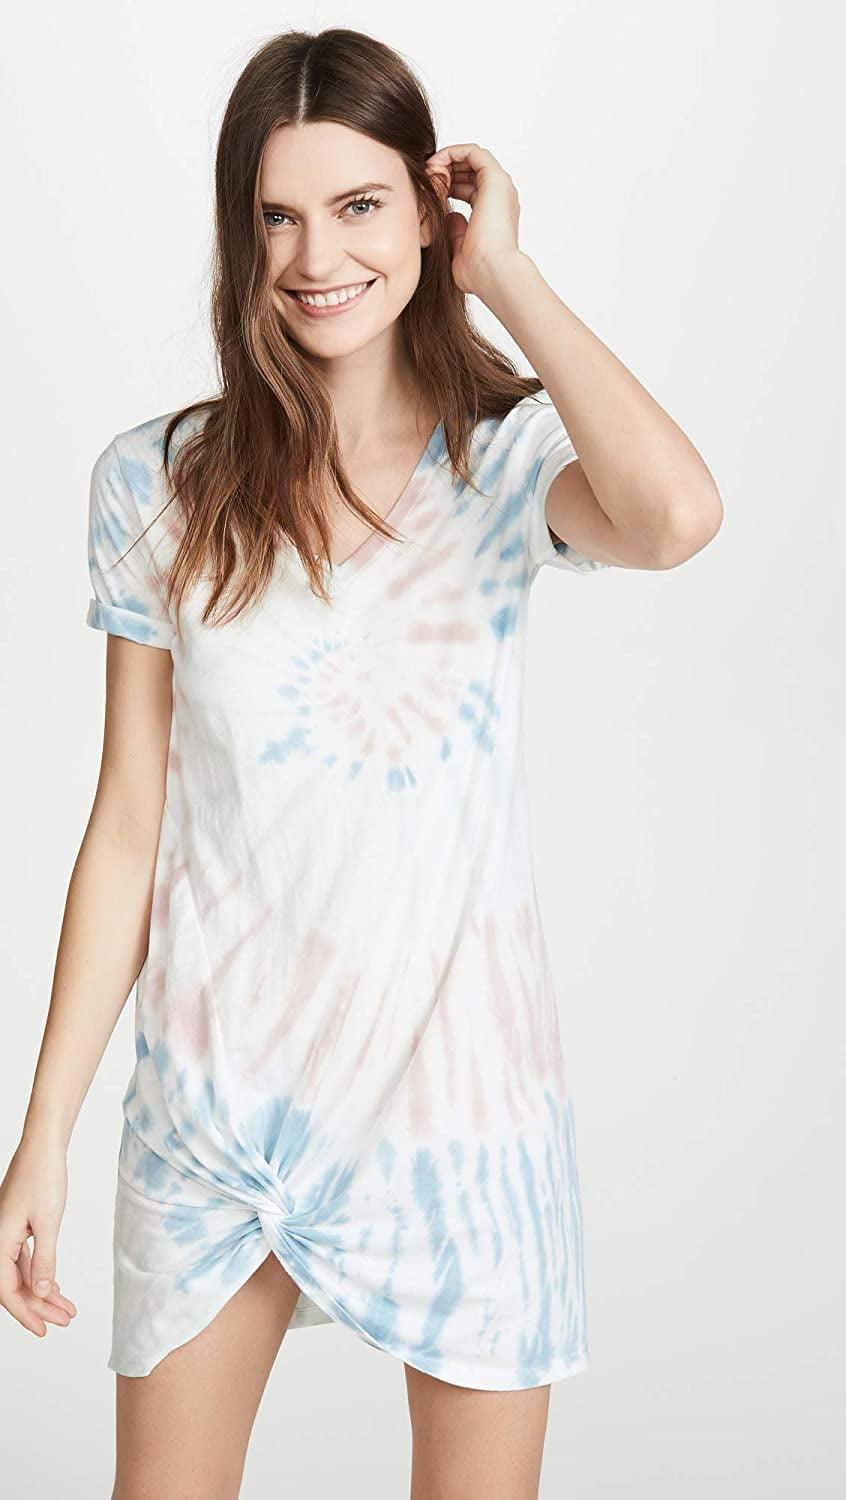 <p>Weekends are made to be spent in this comfy and stylish <span>Z Supply Tie Dye Side Knot Dress</span> ($48), especially if you're a fan of tie-dye. We love the relaxed silhouette and fun knot detail.</p>